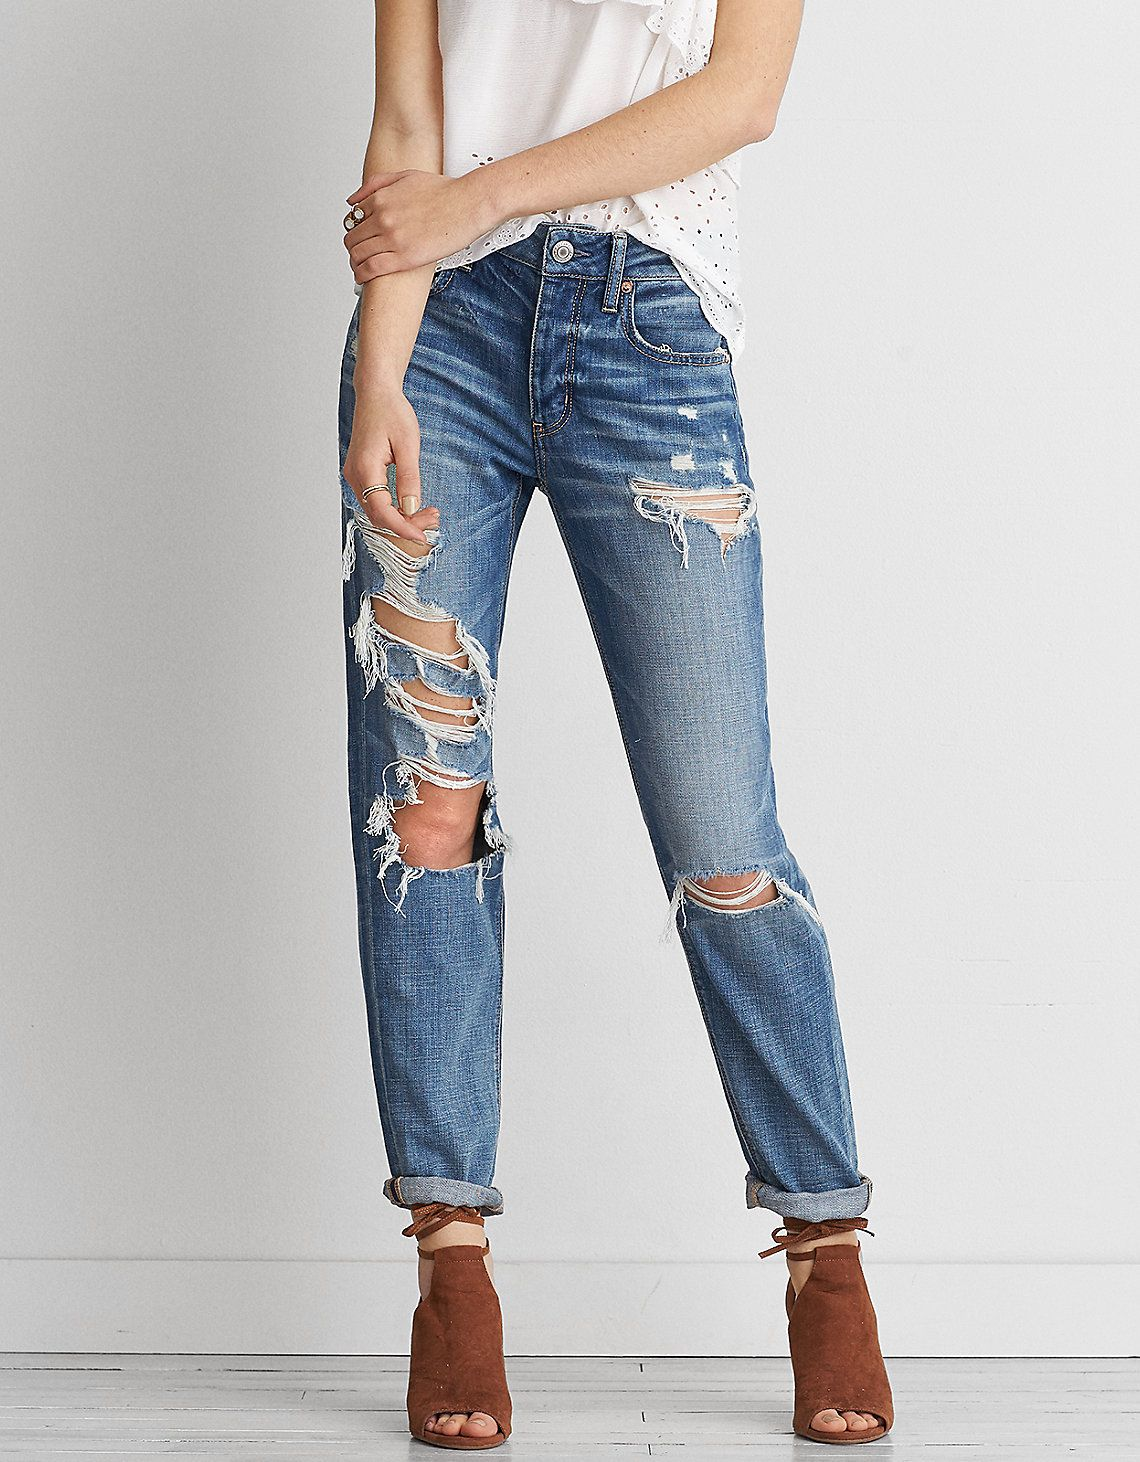 e3ece1d09d0 AEO tomgirl jeans | My Style in 2019 | Jeans, Cheap jeans, Fashion